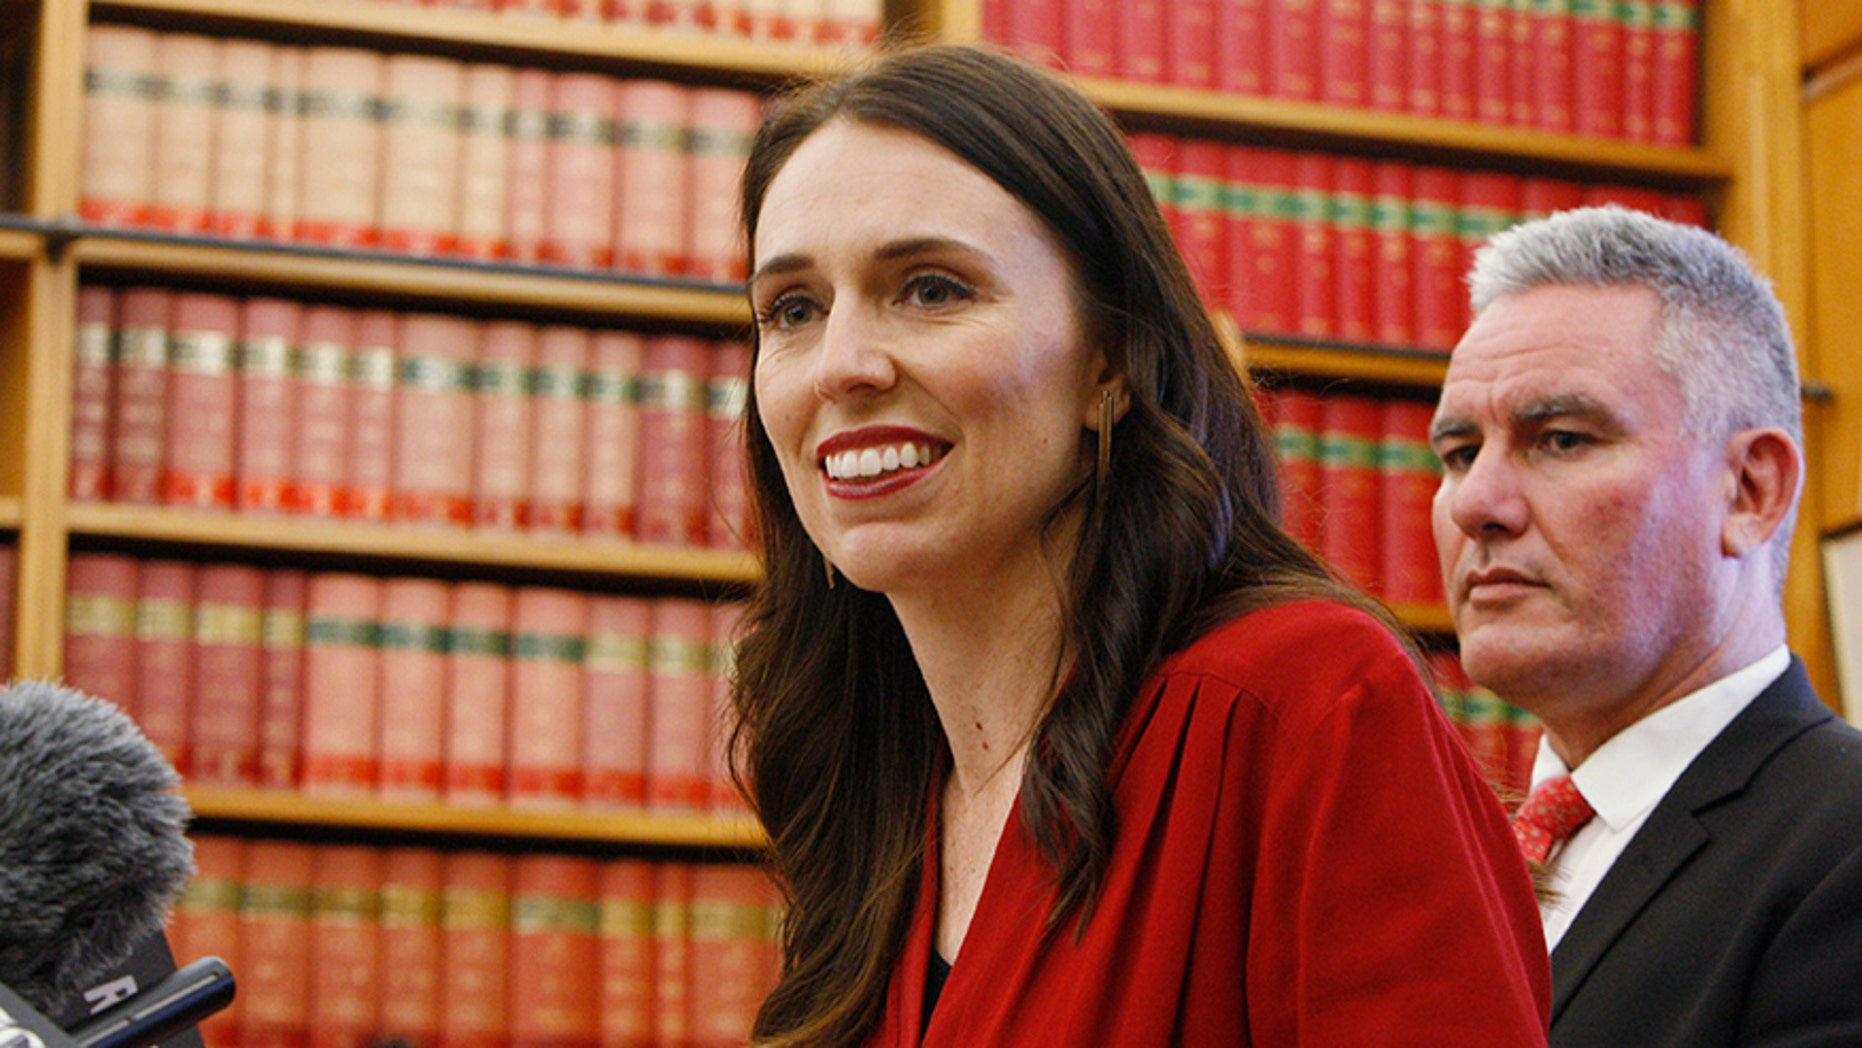 Jacinda Ardern will be New Zealand's second youngest prime minister and the country's third female leader.